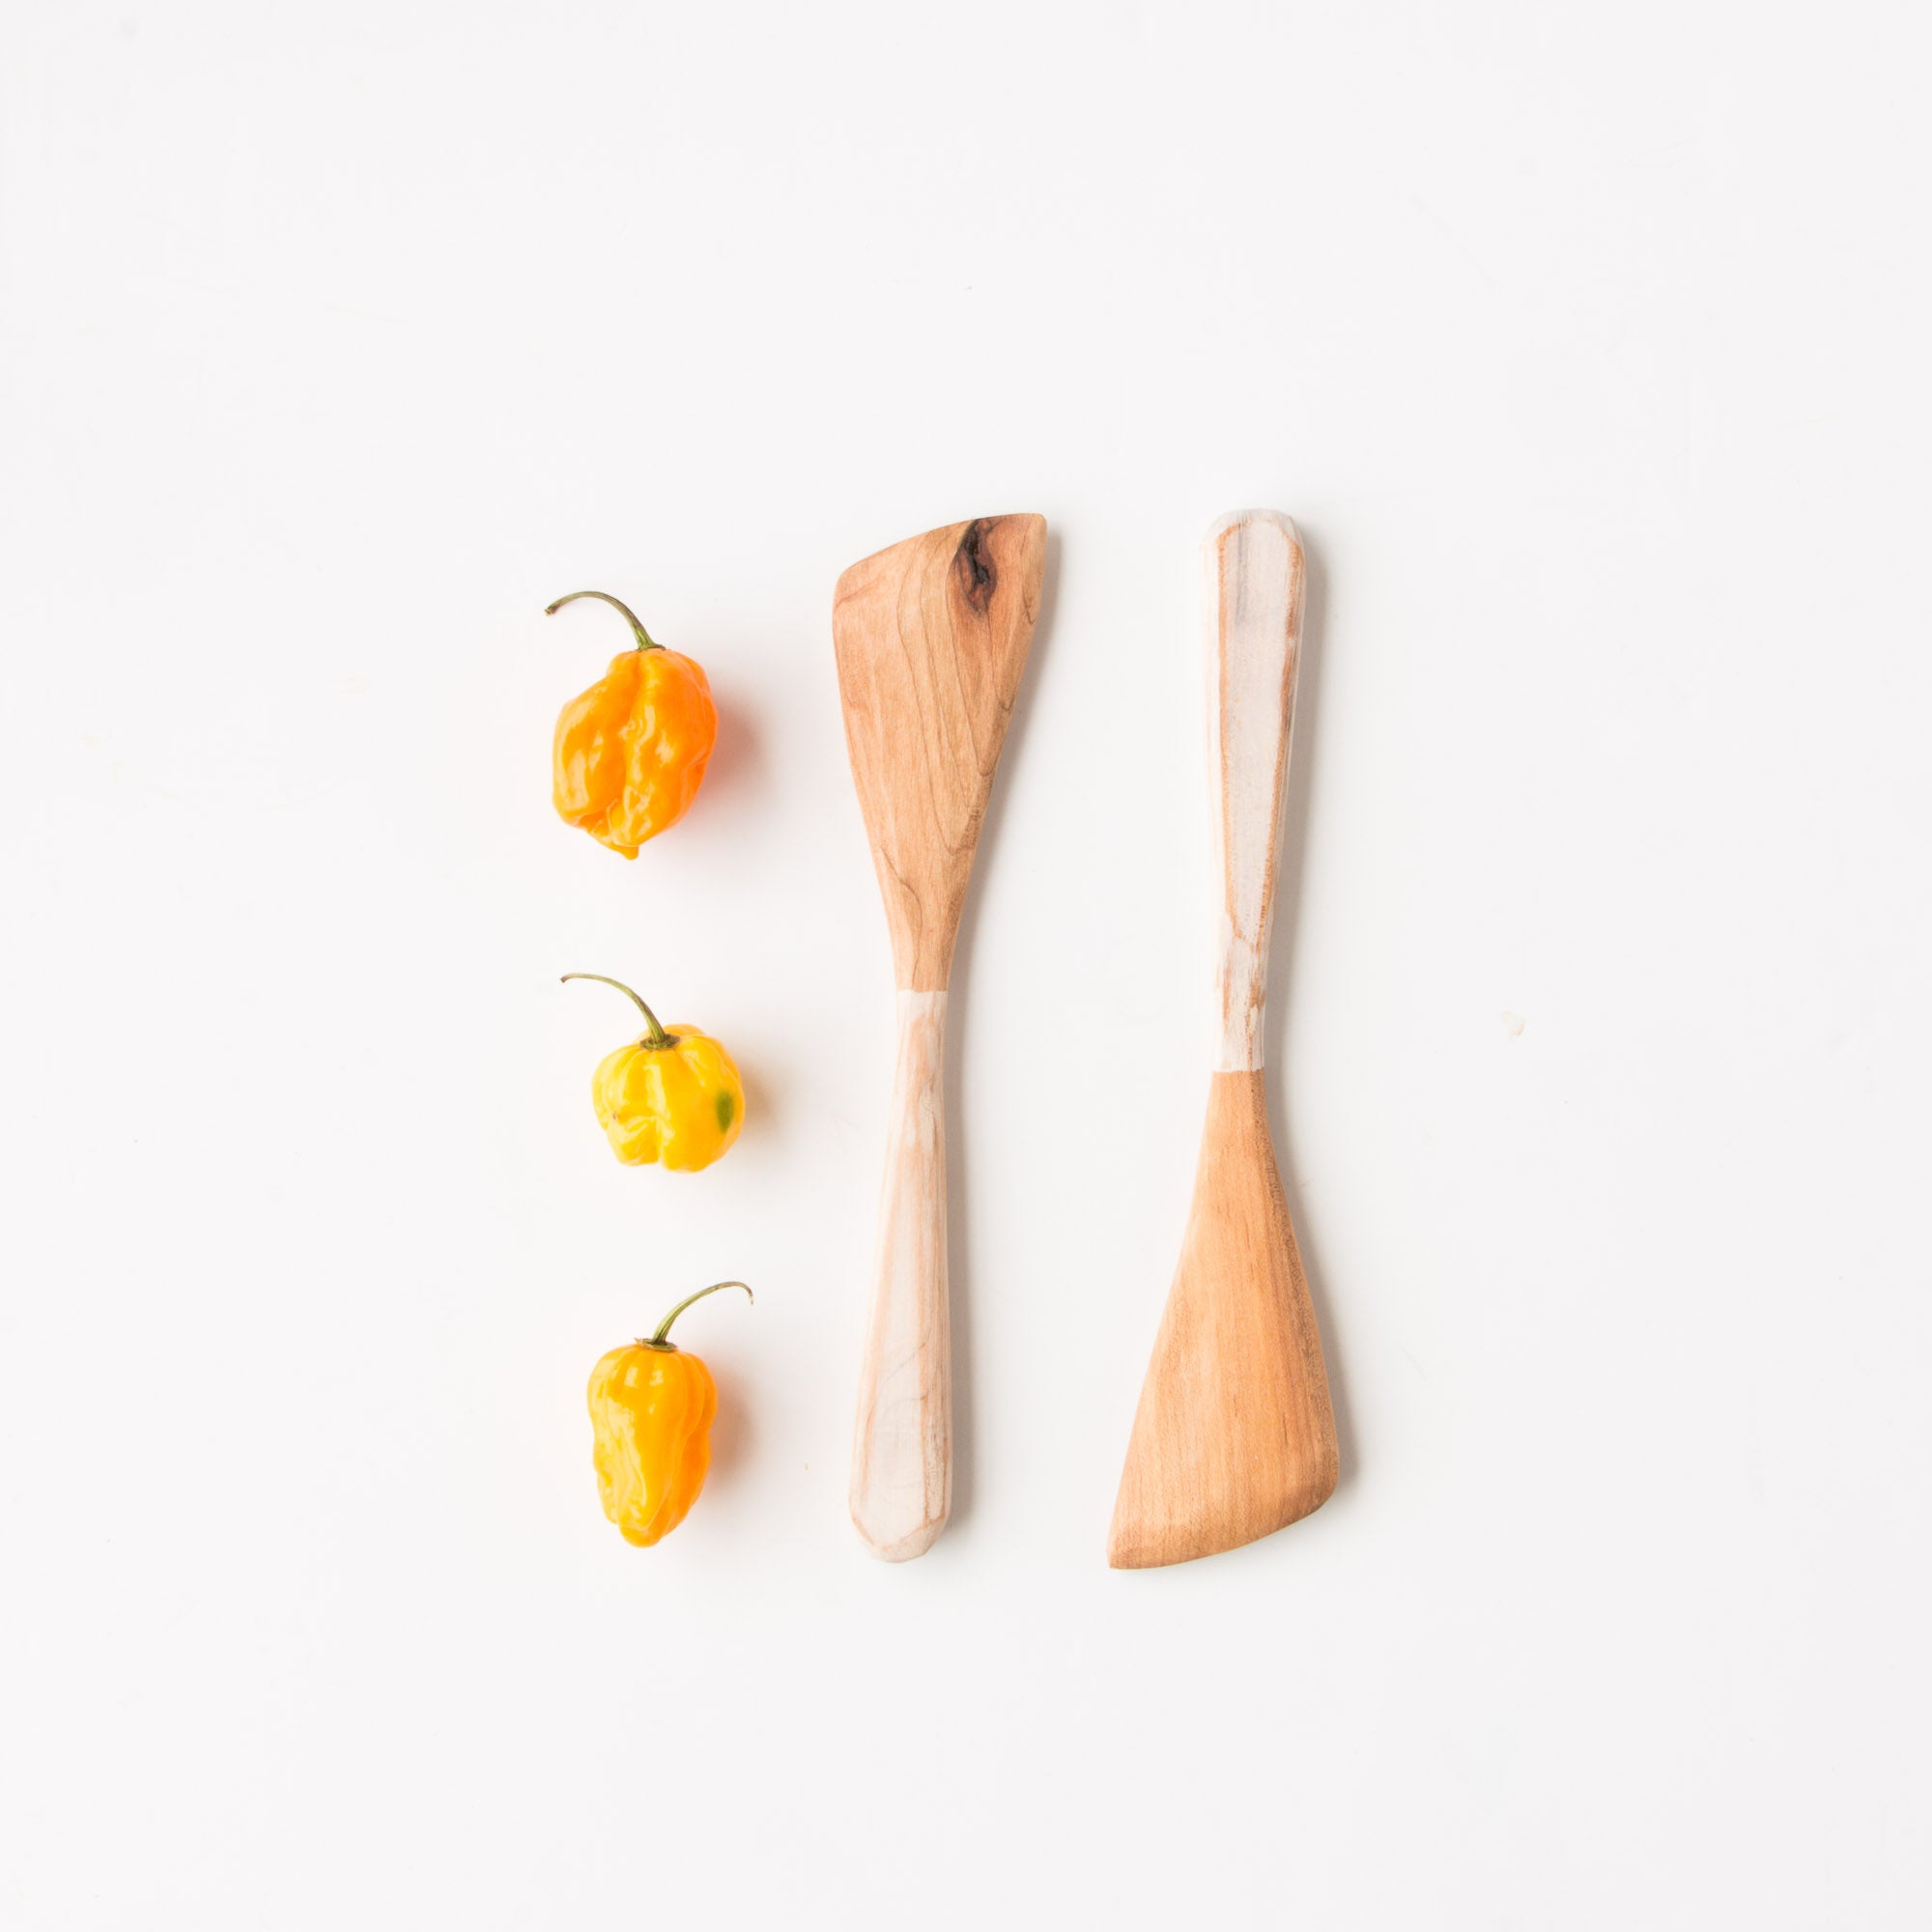 Handcrafted Set of Salad Spatulas in Reclaimed Maple - Photographed With Three Yellow Peppers - Sold by Chic & Basta